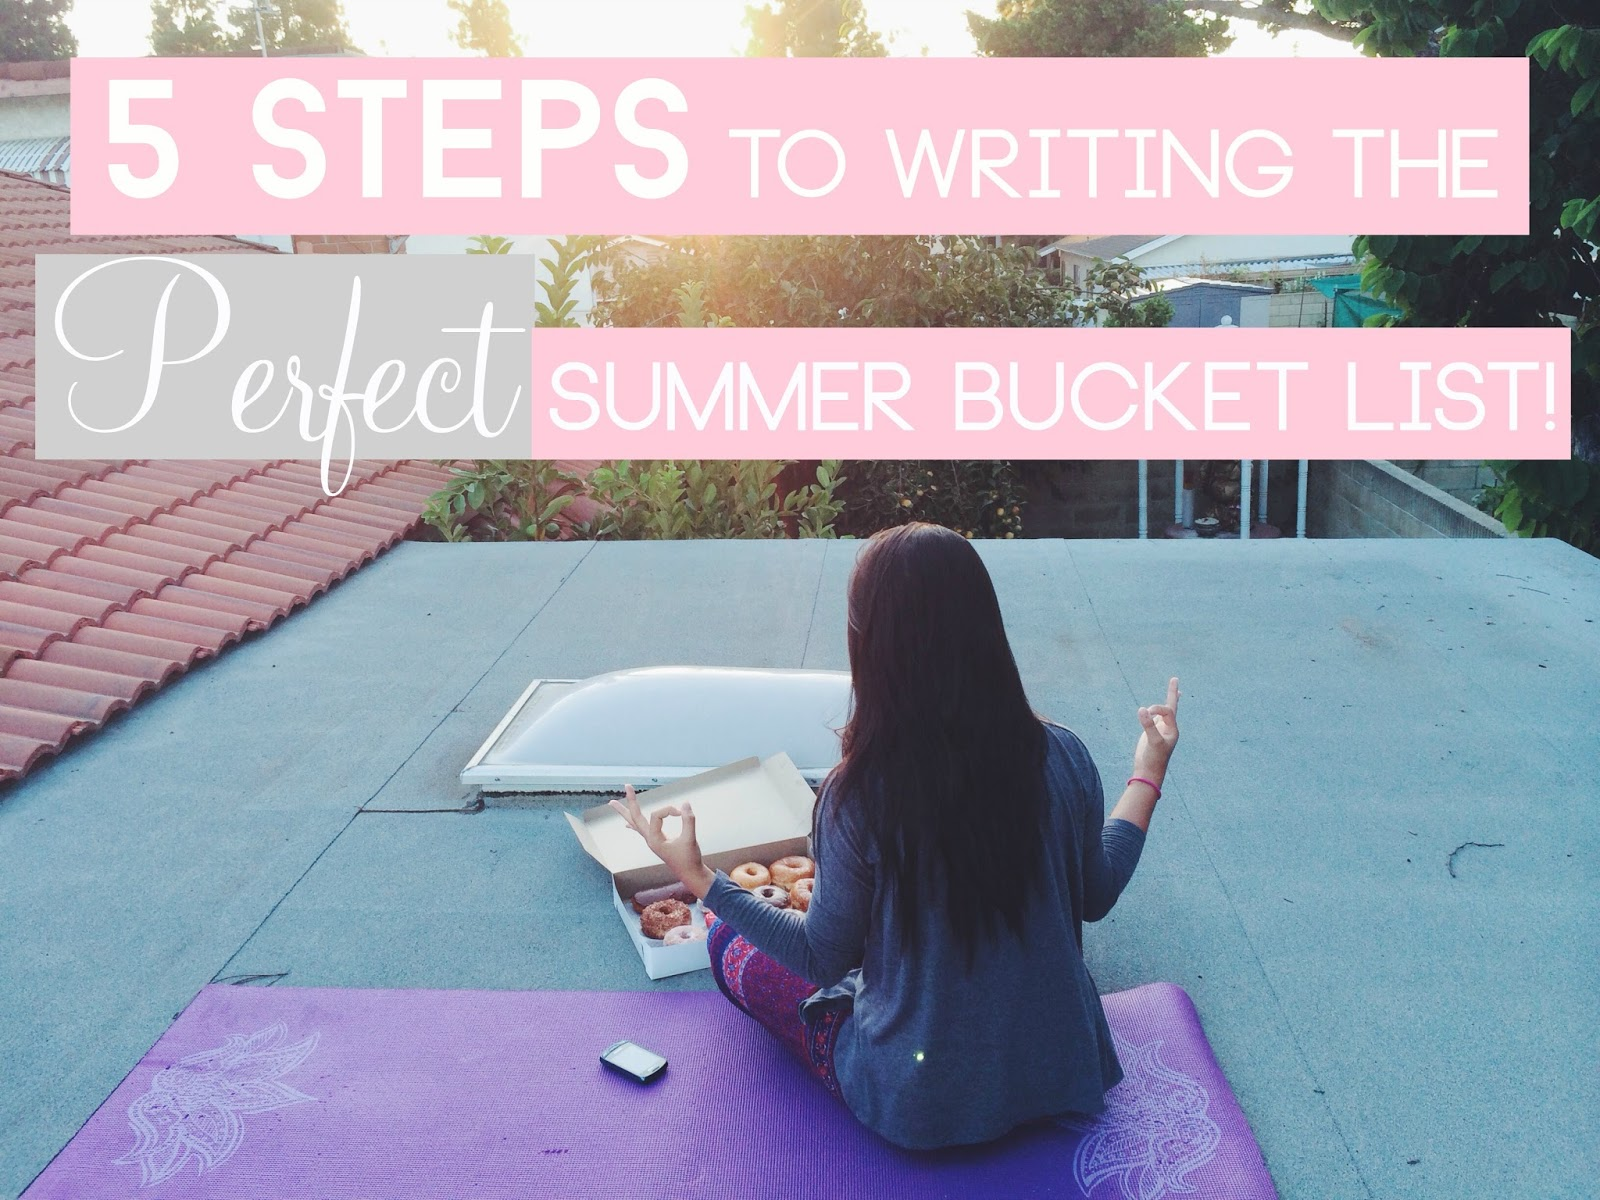 summer bucket list, write a bucket list, bucket list, list, summer